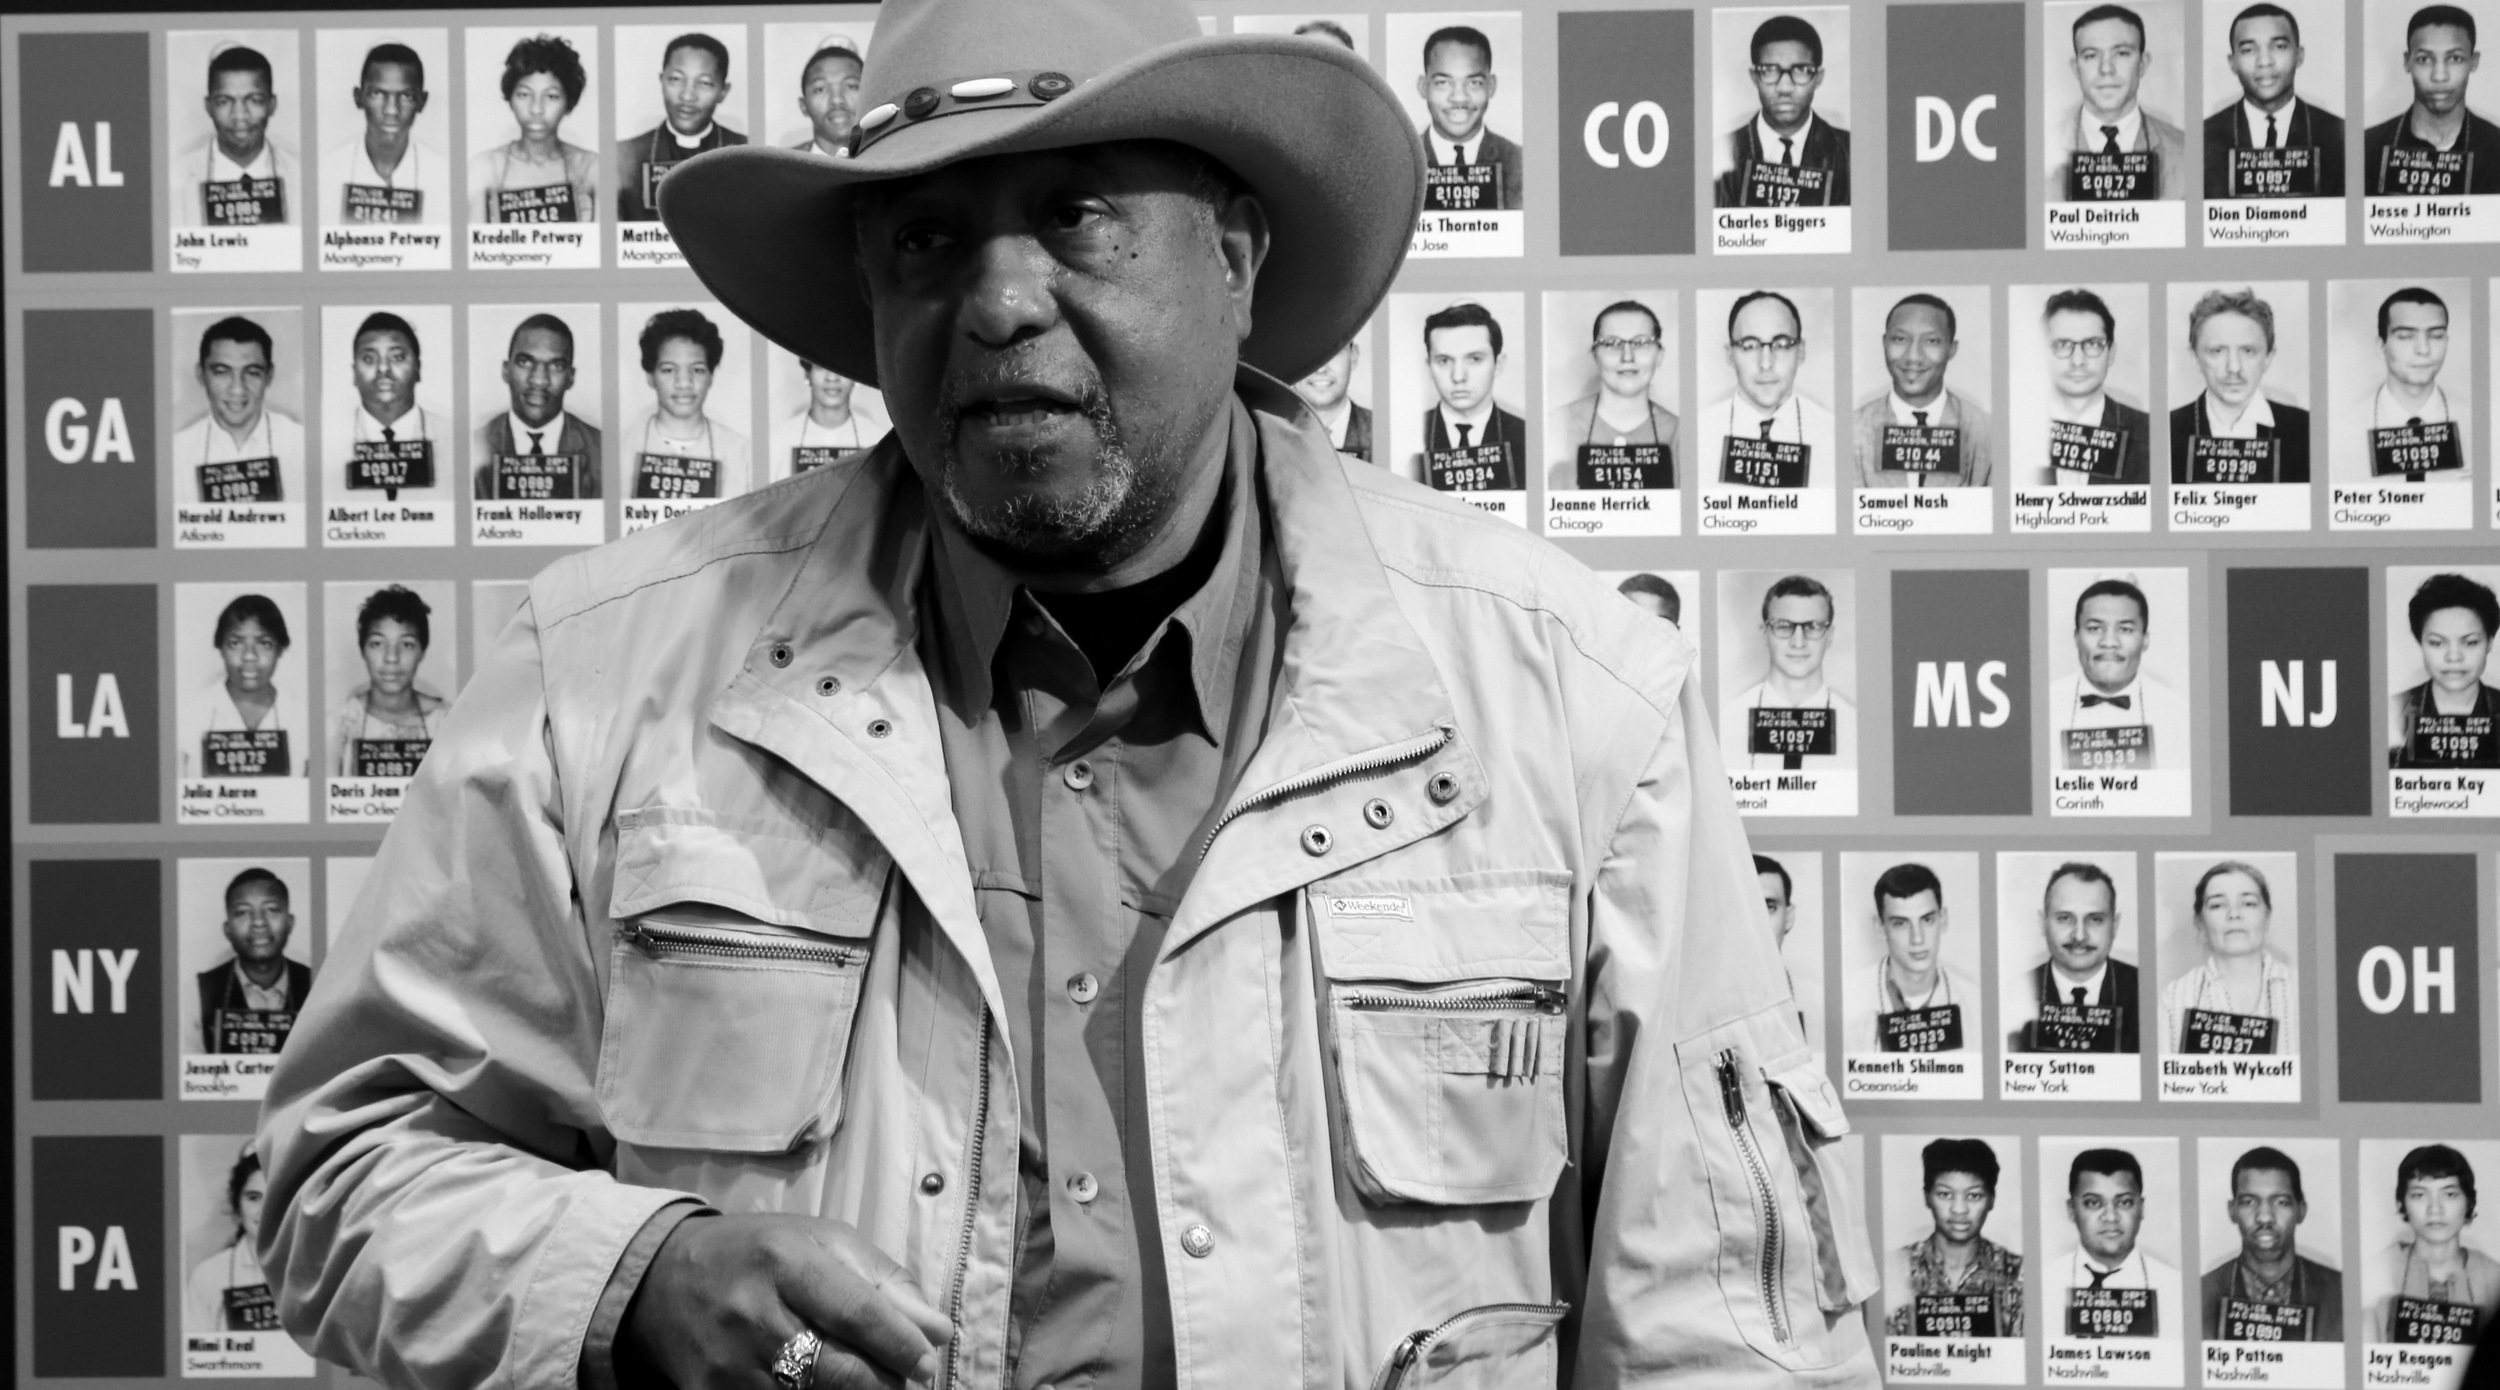 Bernard Lafayette in front of the wall of mugshots of the Freedom Riders at the Freedom Ride Museum  photo by Troy Bonnes